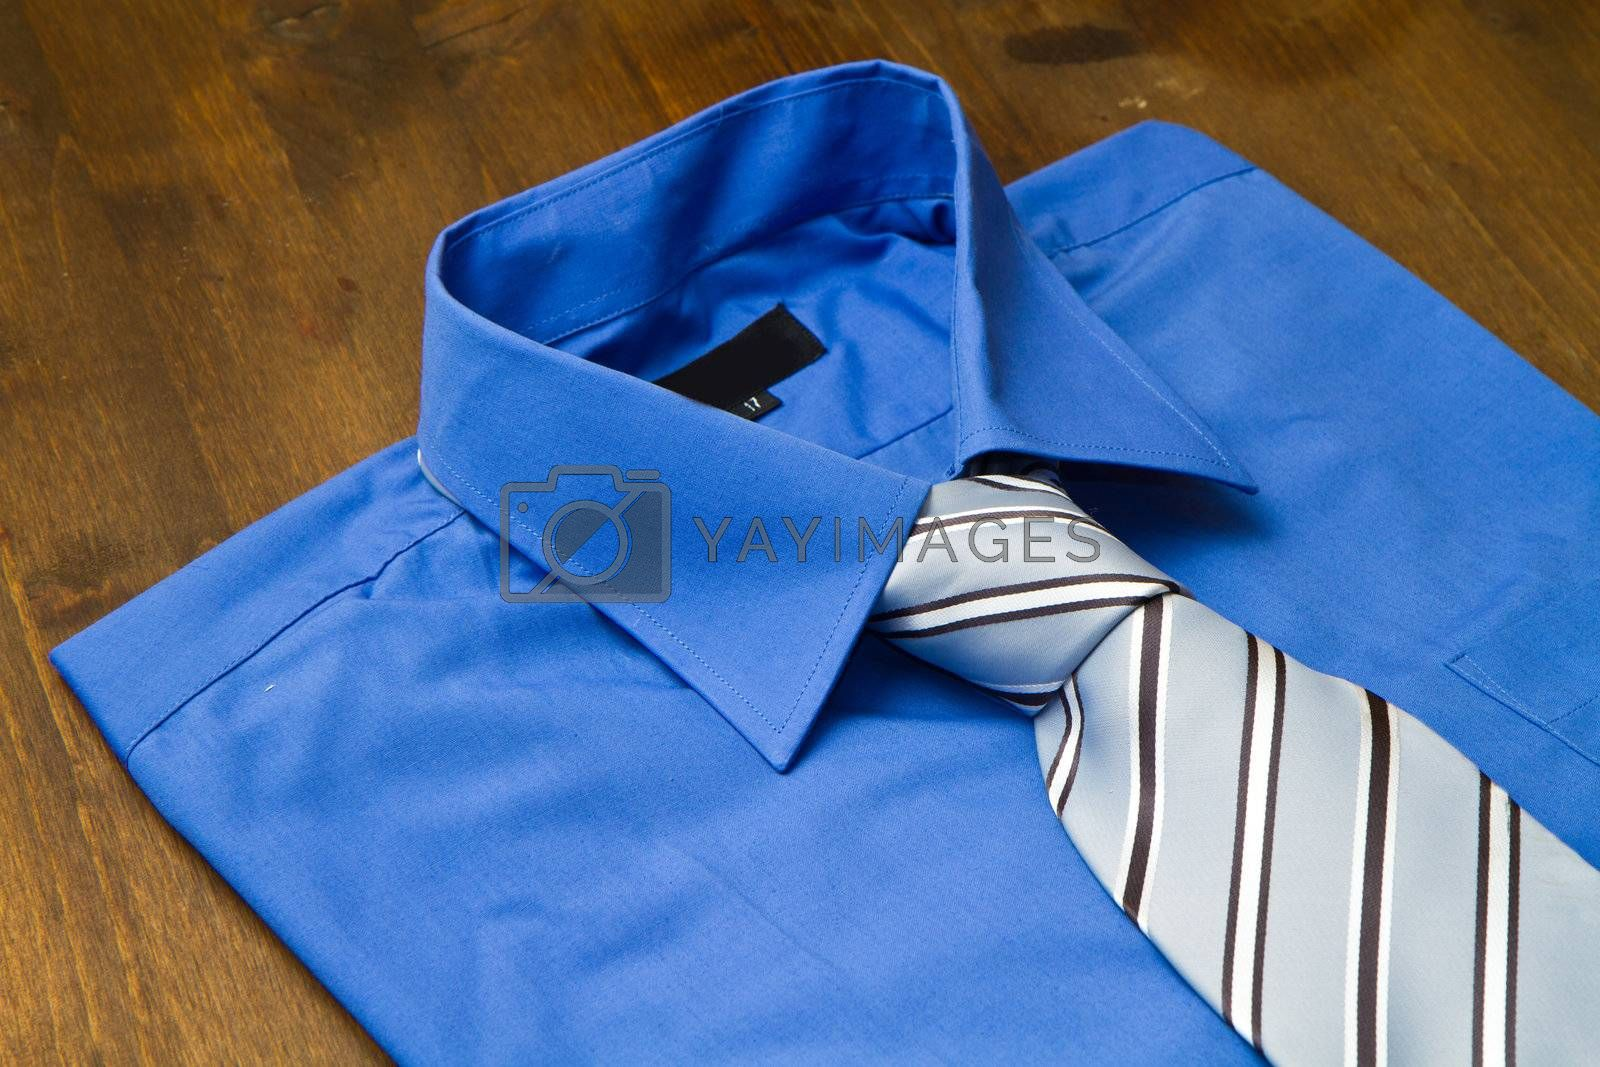 New blue man's shirt and tie isolated on wood